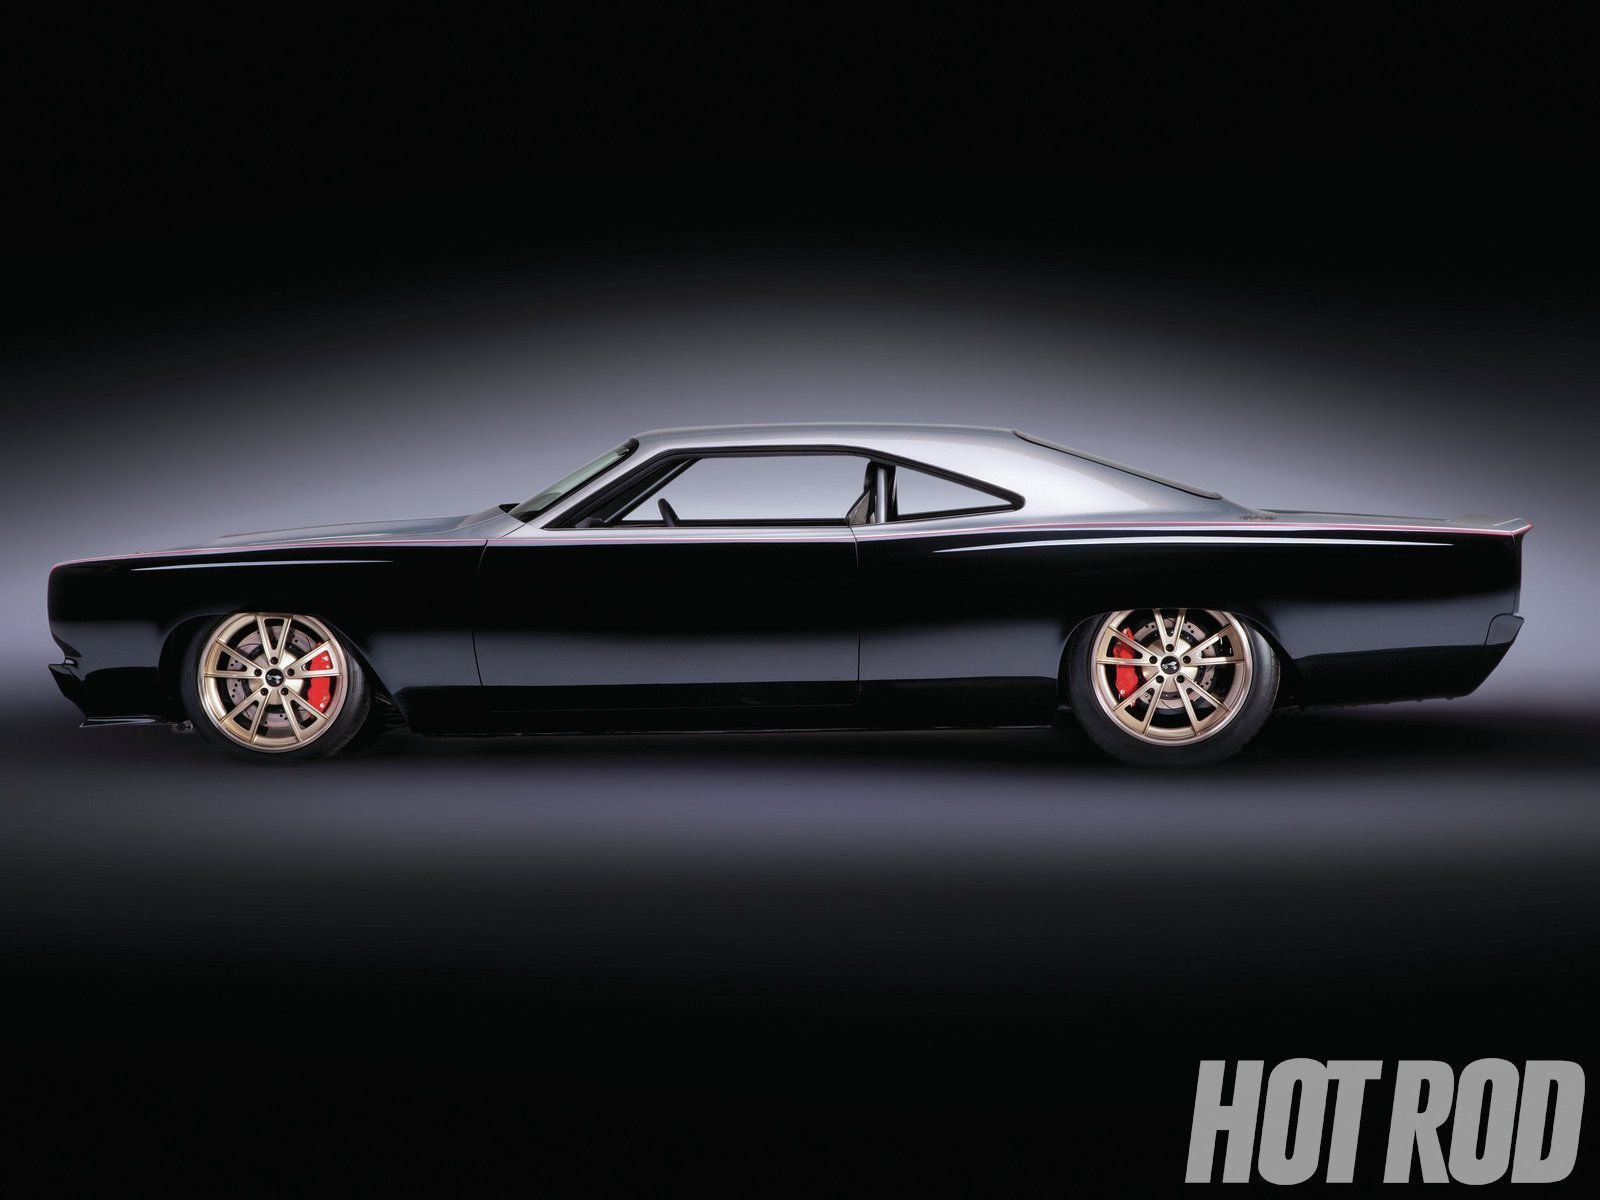 1969 Plymouth Roadrunner hot rod This is a beautiful modern